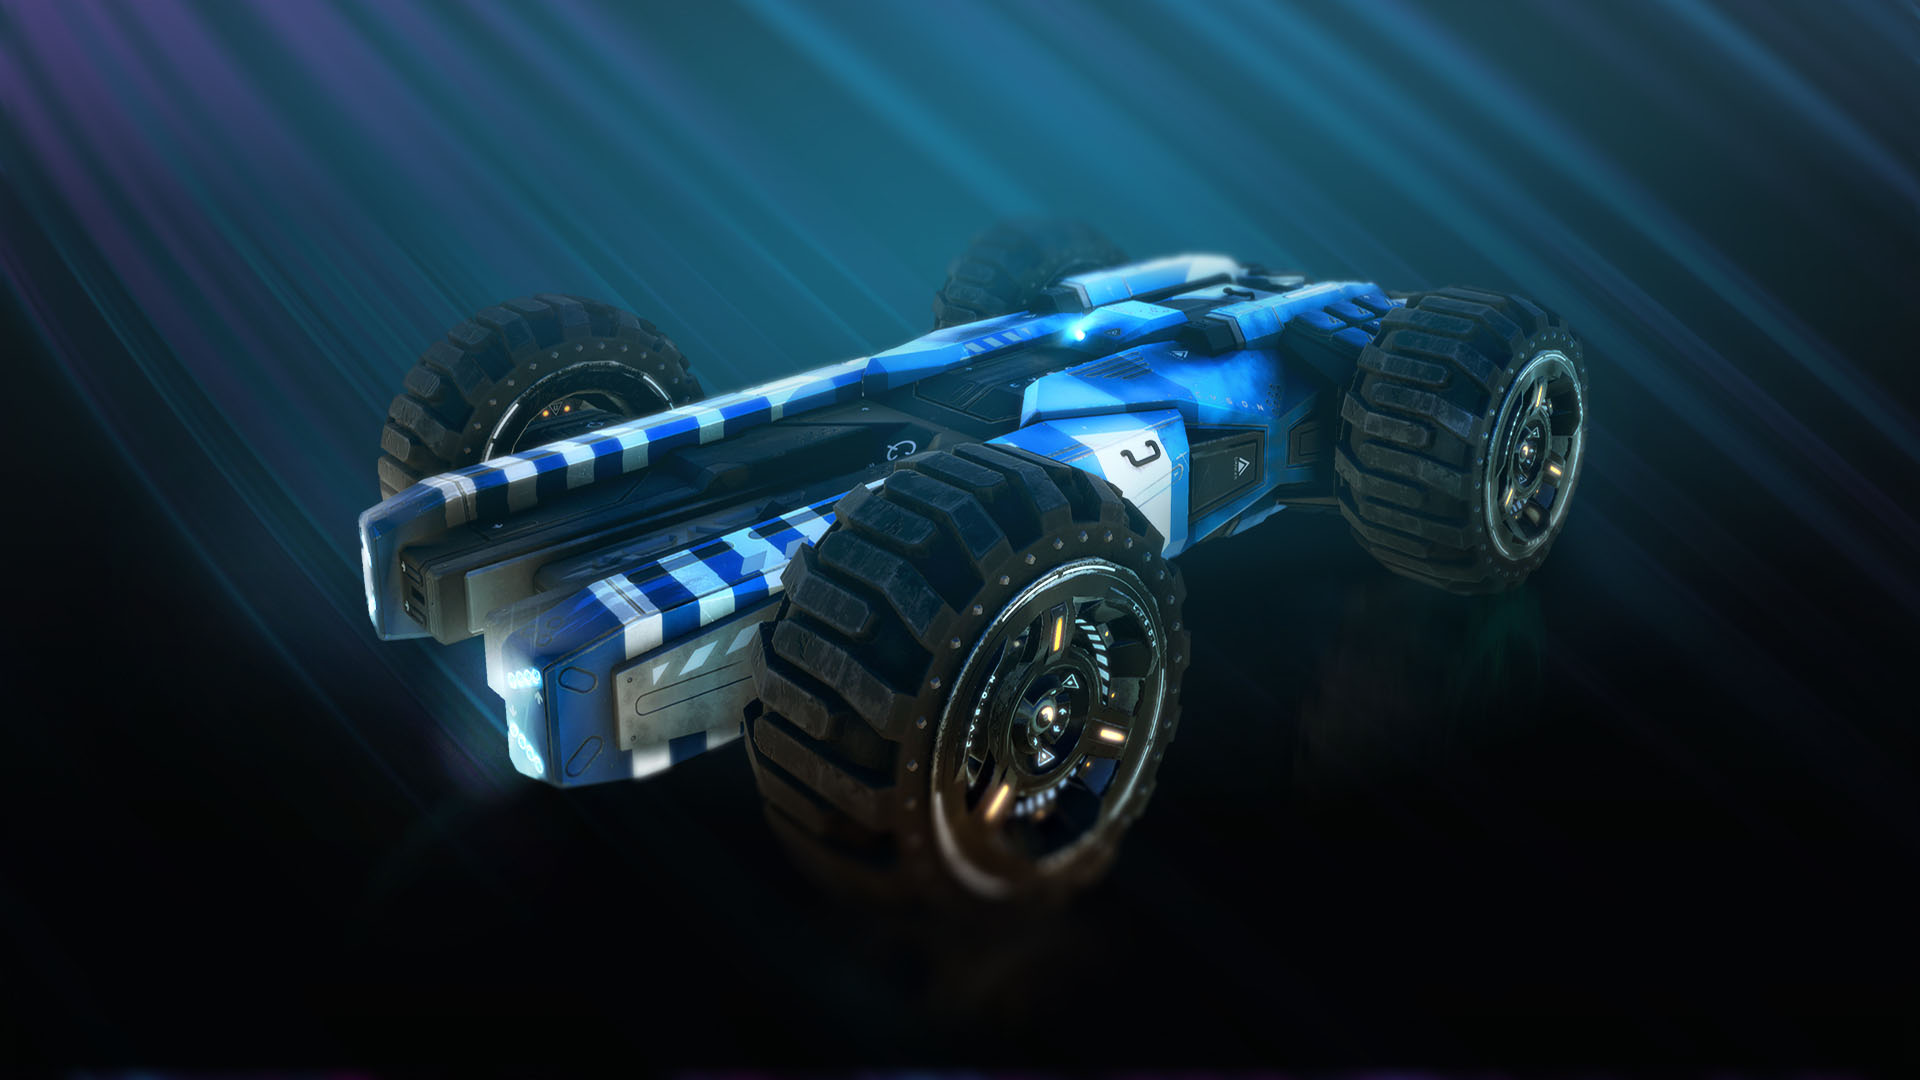 Tempest - Cygon's magnum opus. The Tempest is the fastest car they have ever created. Only skilled drivers apply.